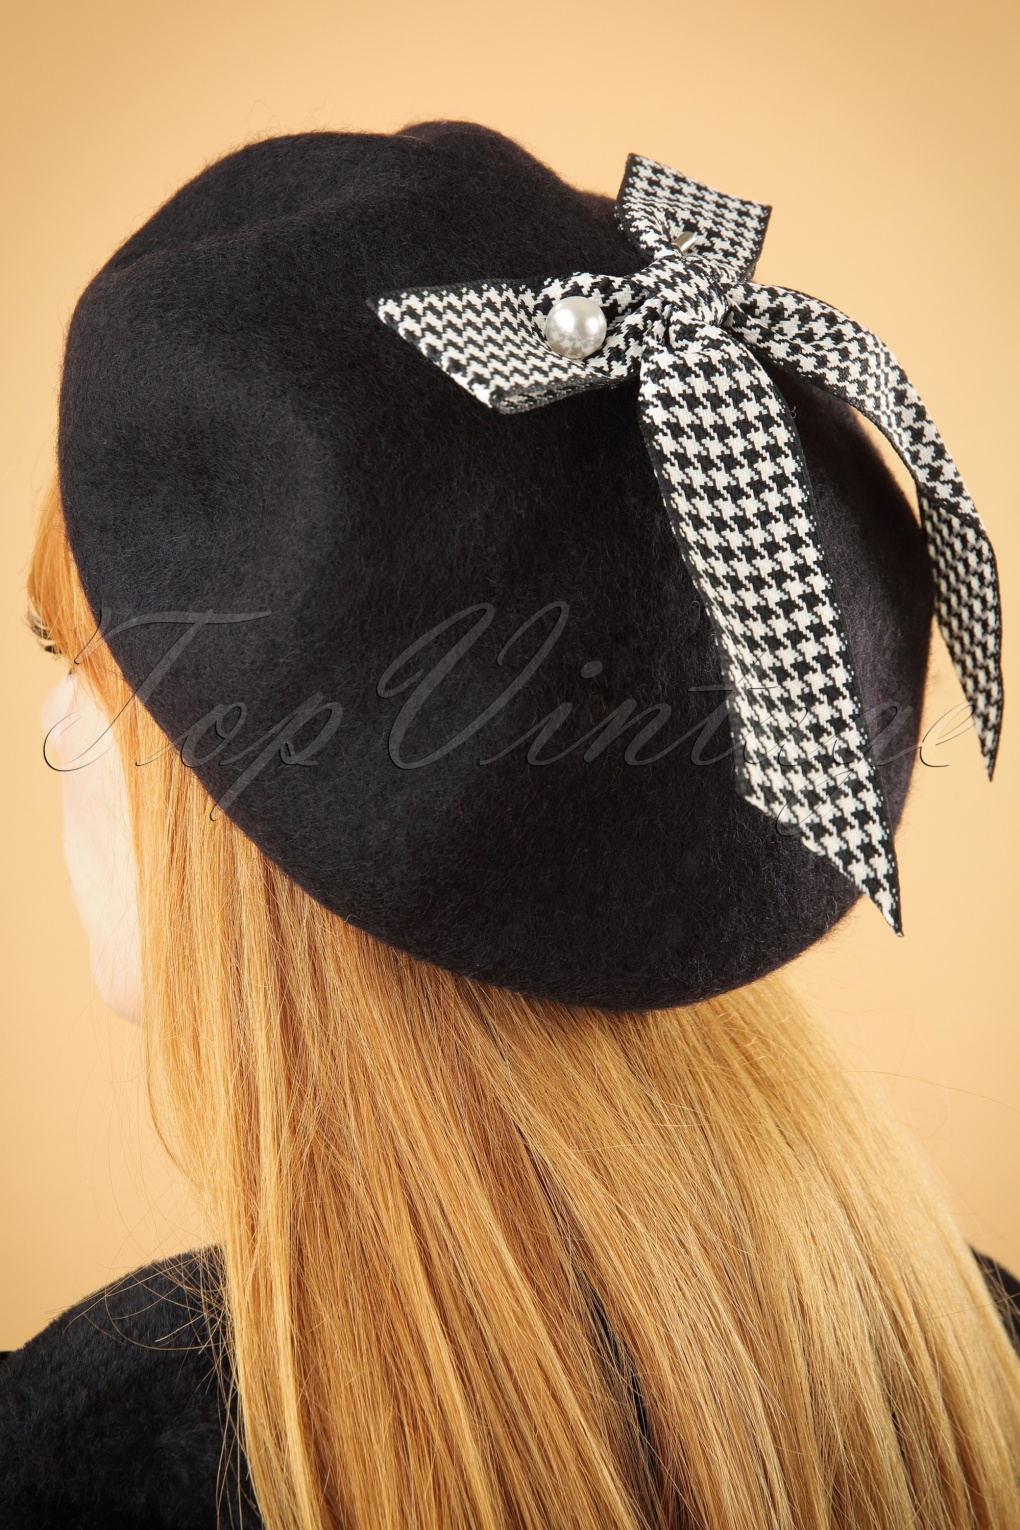 Women's Vintage Hats | Old Fashioned Hats | Retro Hats 50s Bow Wool Beret in Black £13.11 AT vintagedancer.com